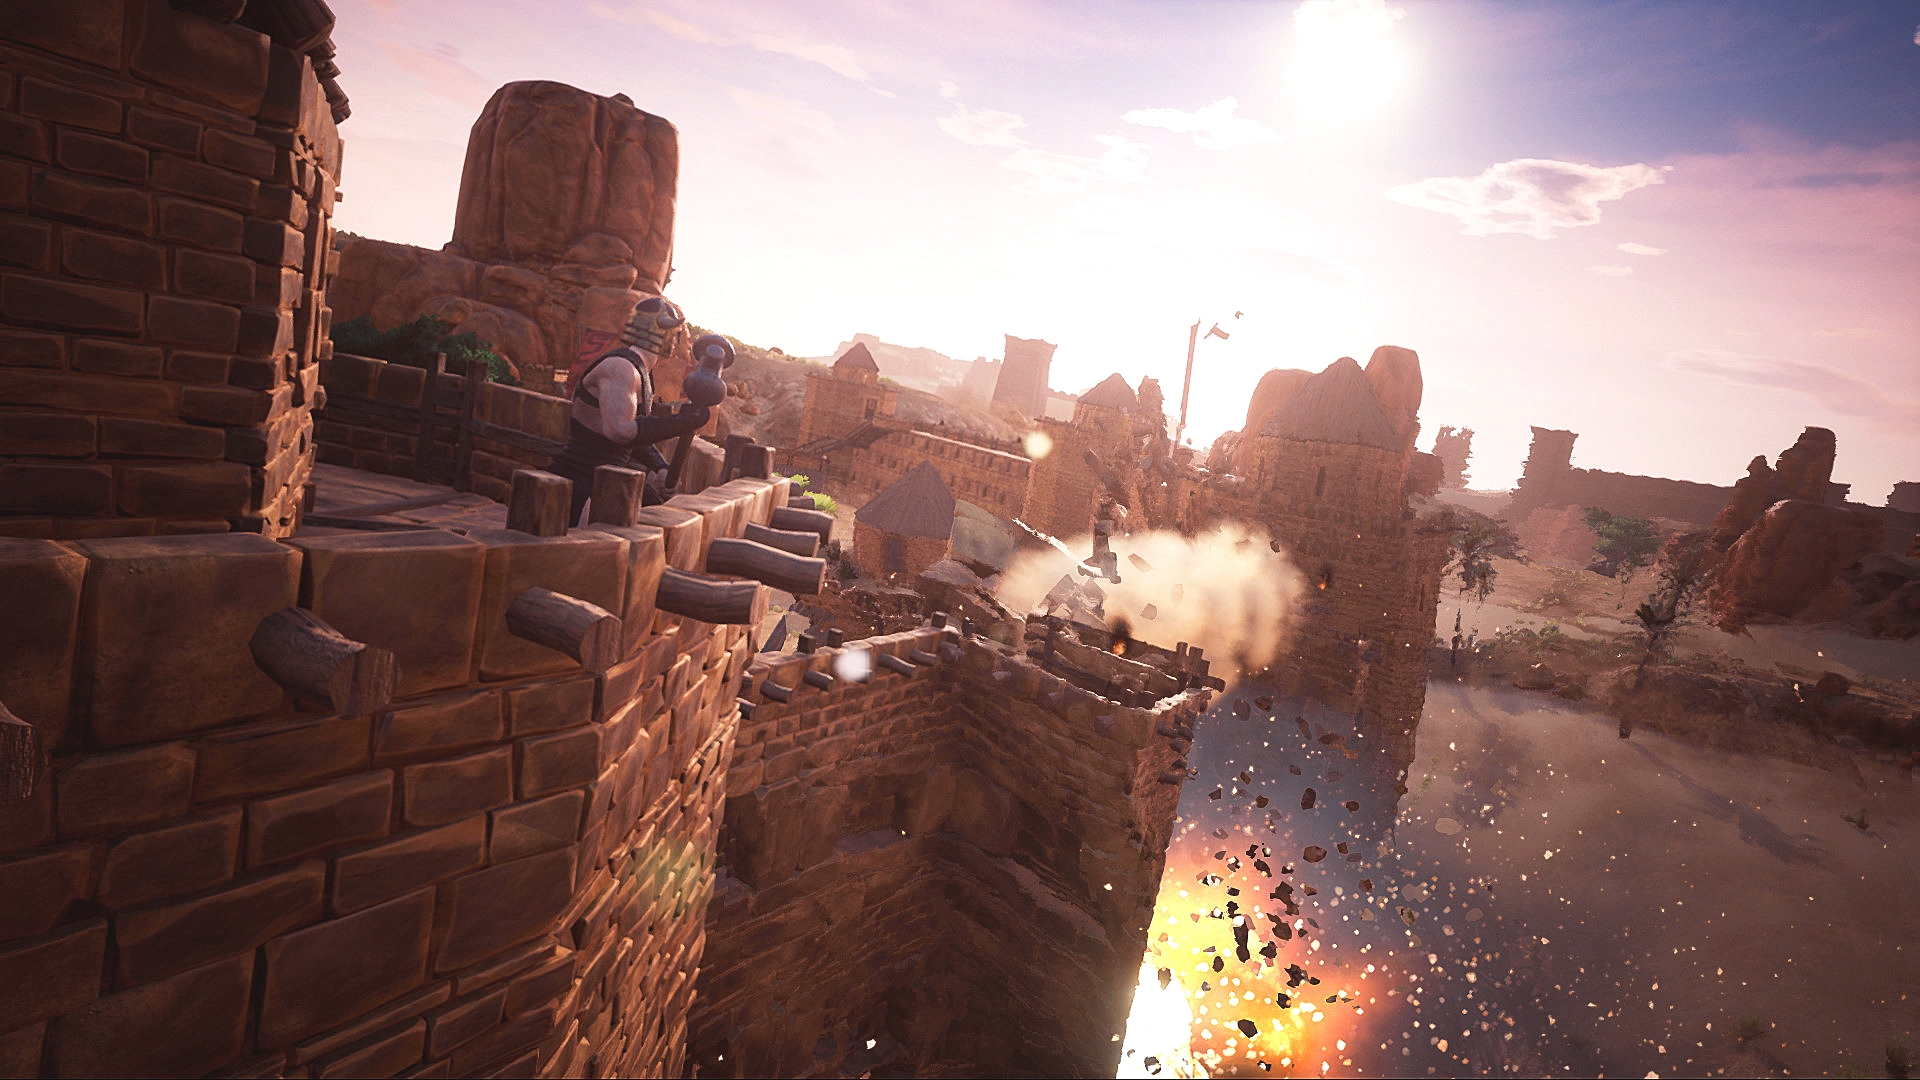 conan-exiles-screenshot-12.jpg